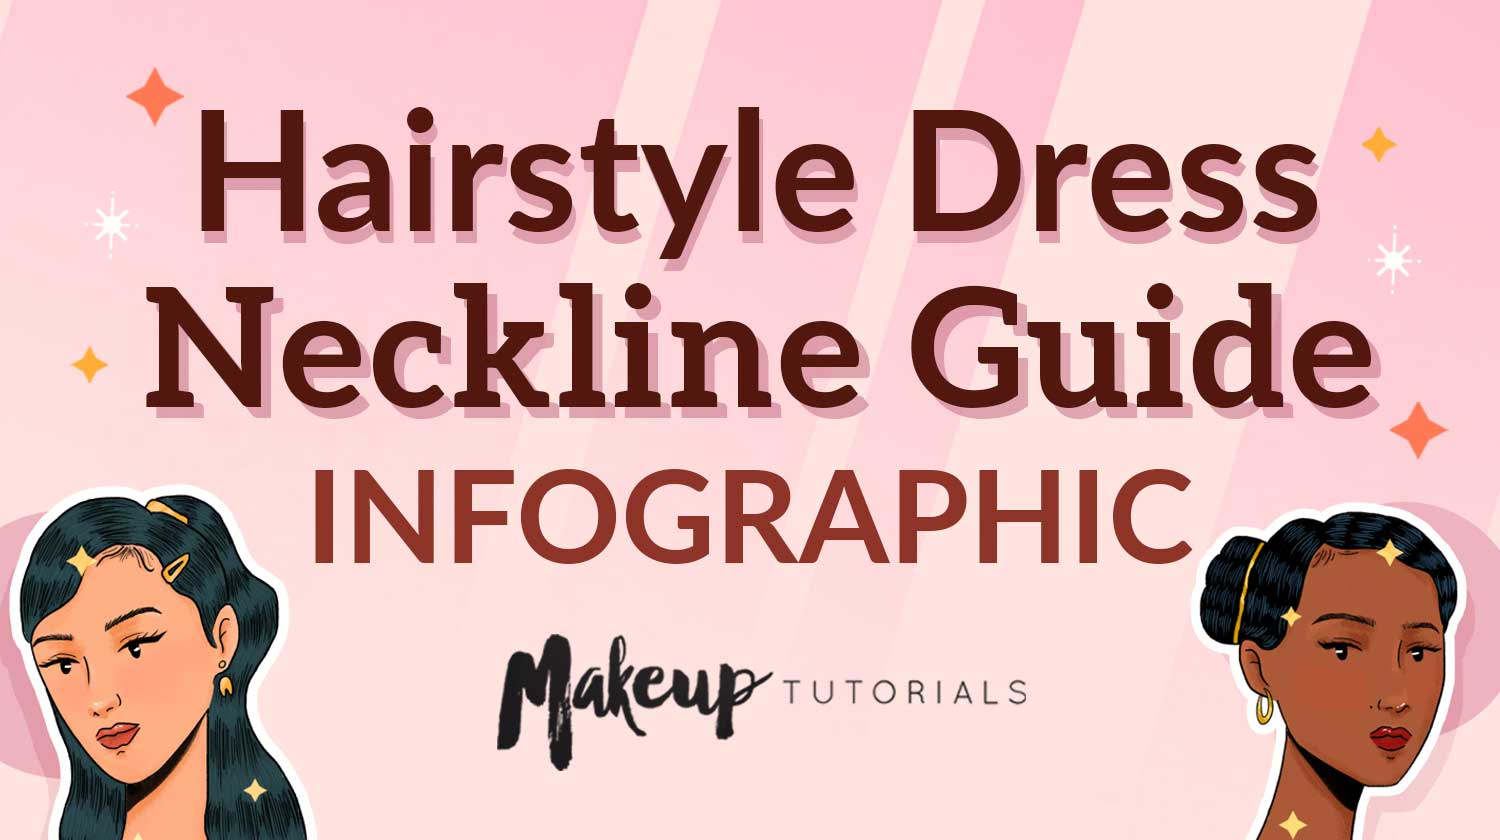 feature image | How To Match Your Hairstyle To Your Dress [INFOGRAPHIC] | Makeup Tutorials